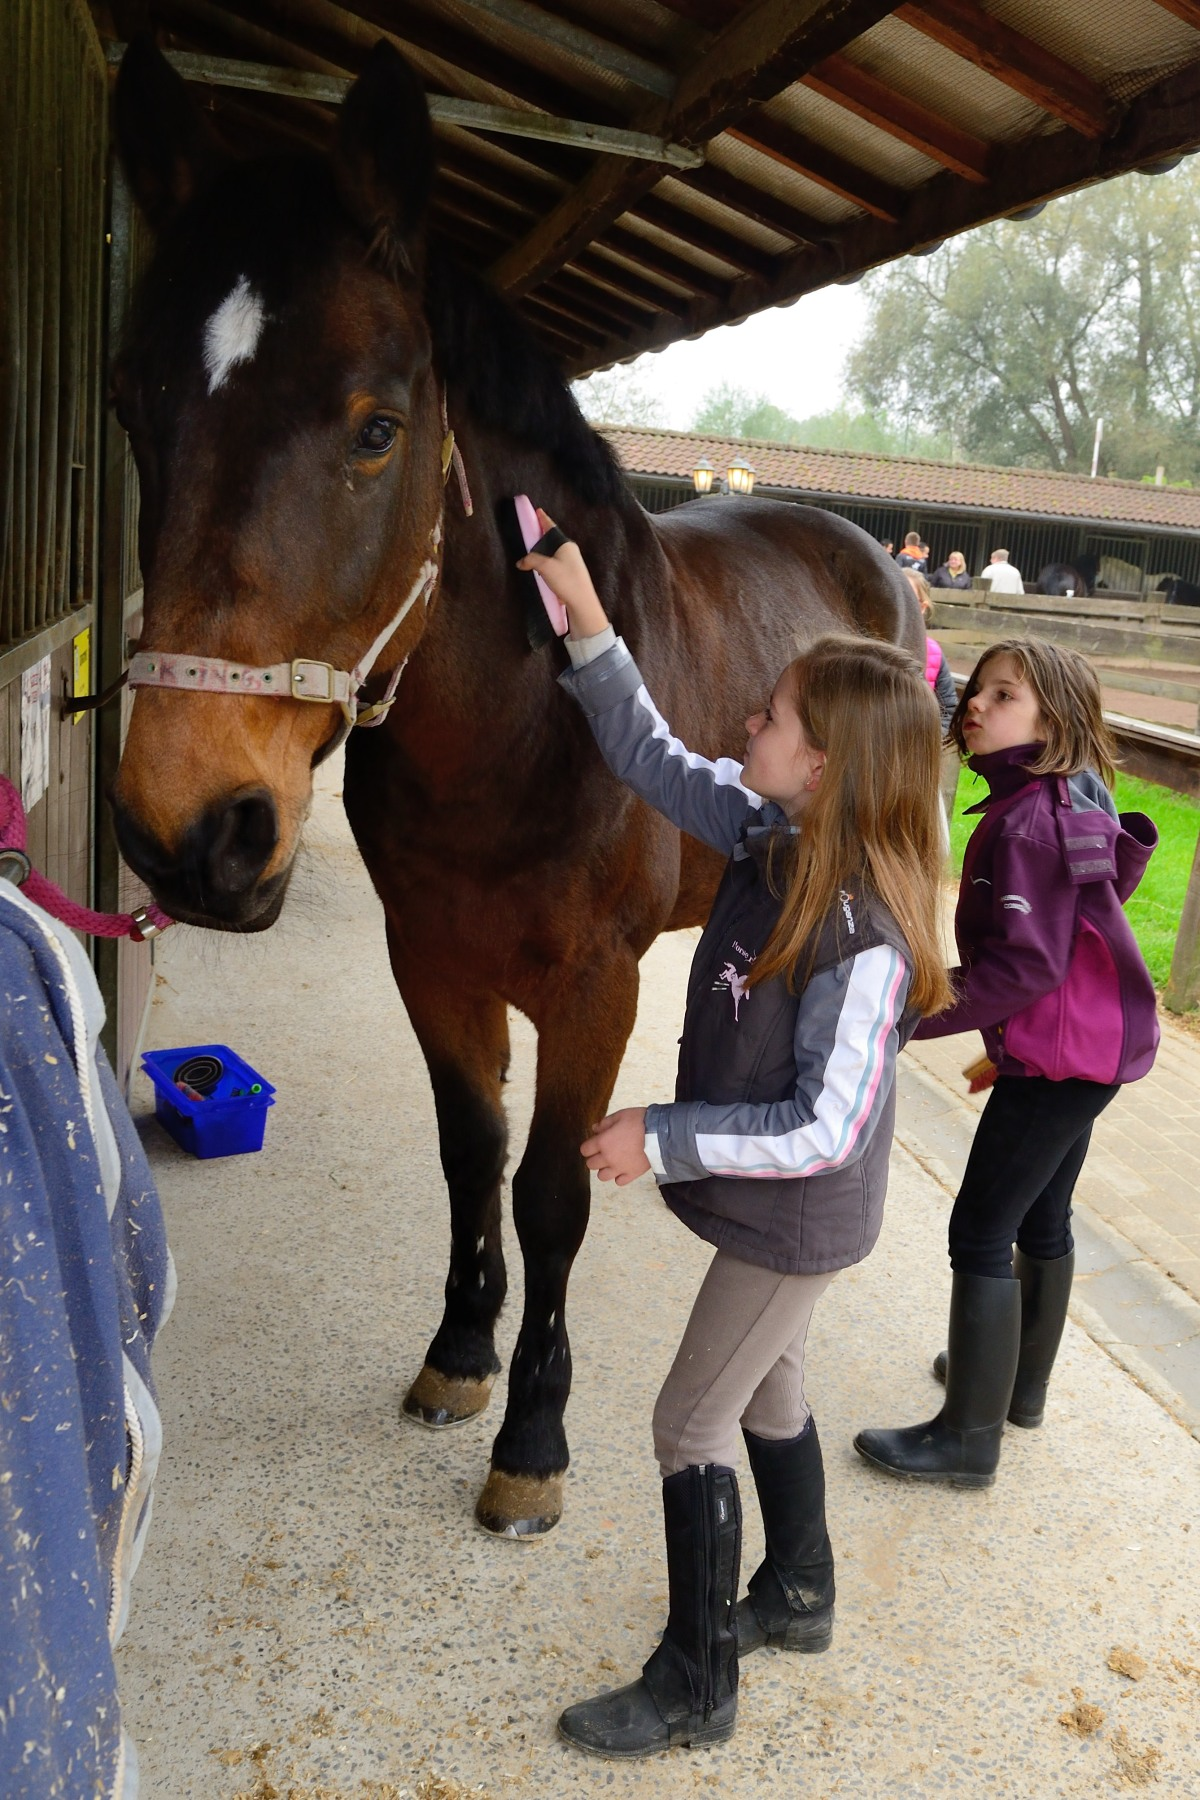 Hippotherapy is a therapeutic approach used to treat individuals experiencing difficulties related to physical or mental disabilities, as well as people suffering from depression, personality disorders, ADHD and autism.